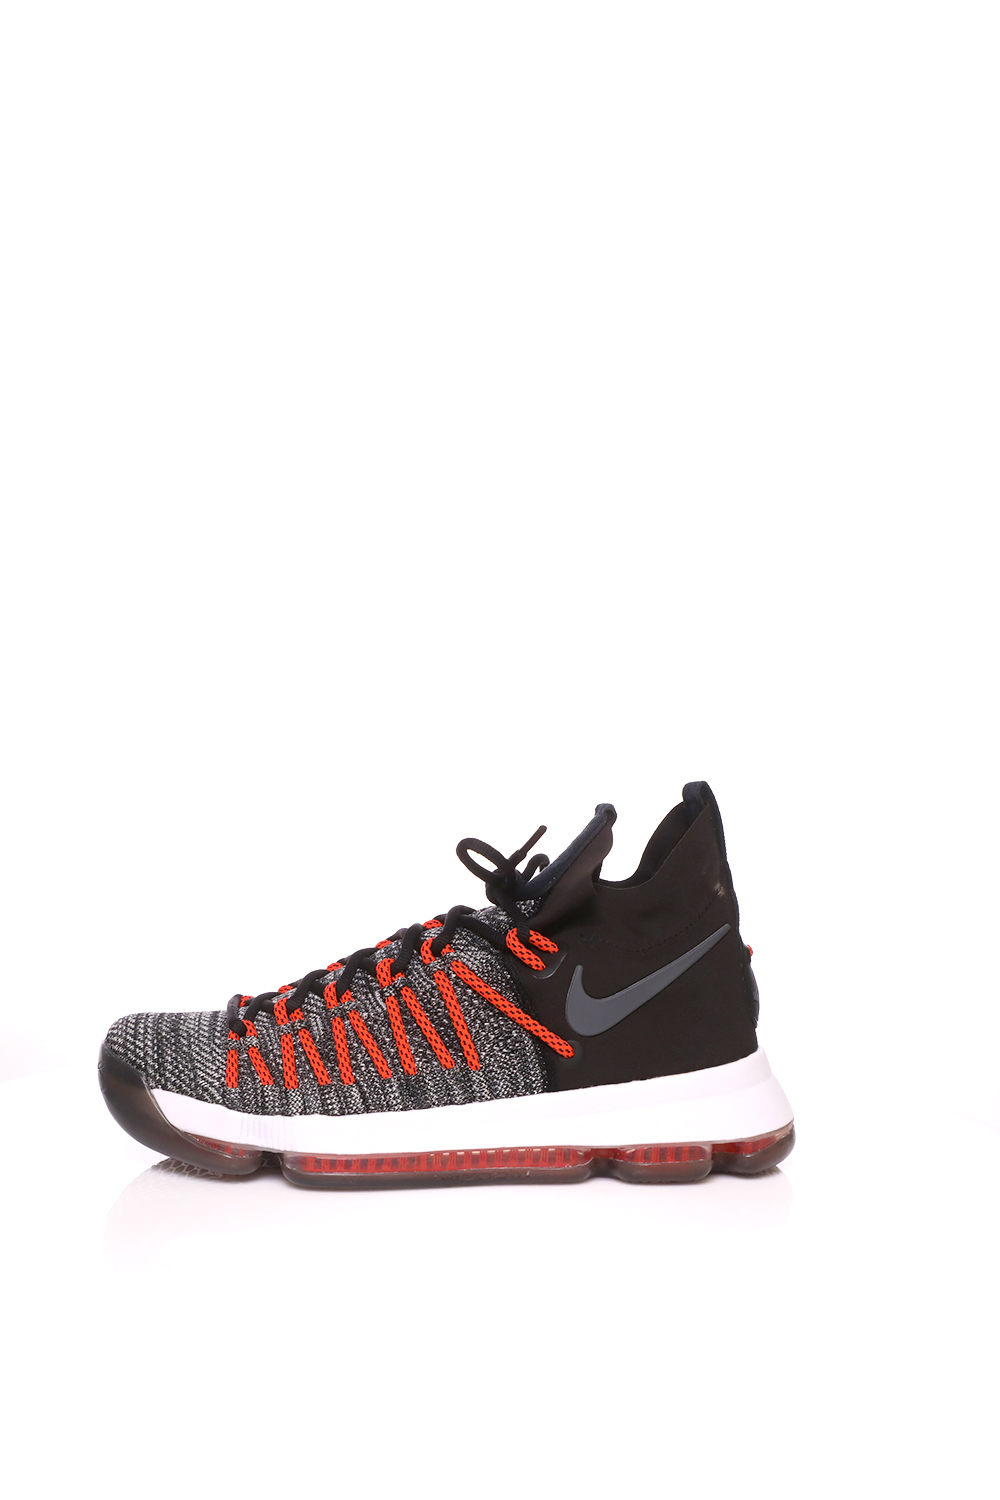 2366d58733a -53% Factory Outlet NIKE – Ανδρικά παπούτσια μπάσκετ NIKE ZOOM KD9 γκρι